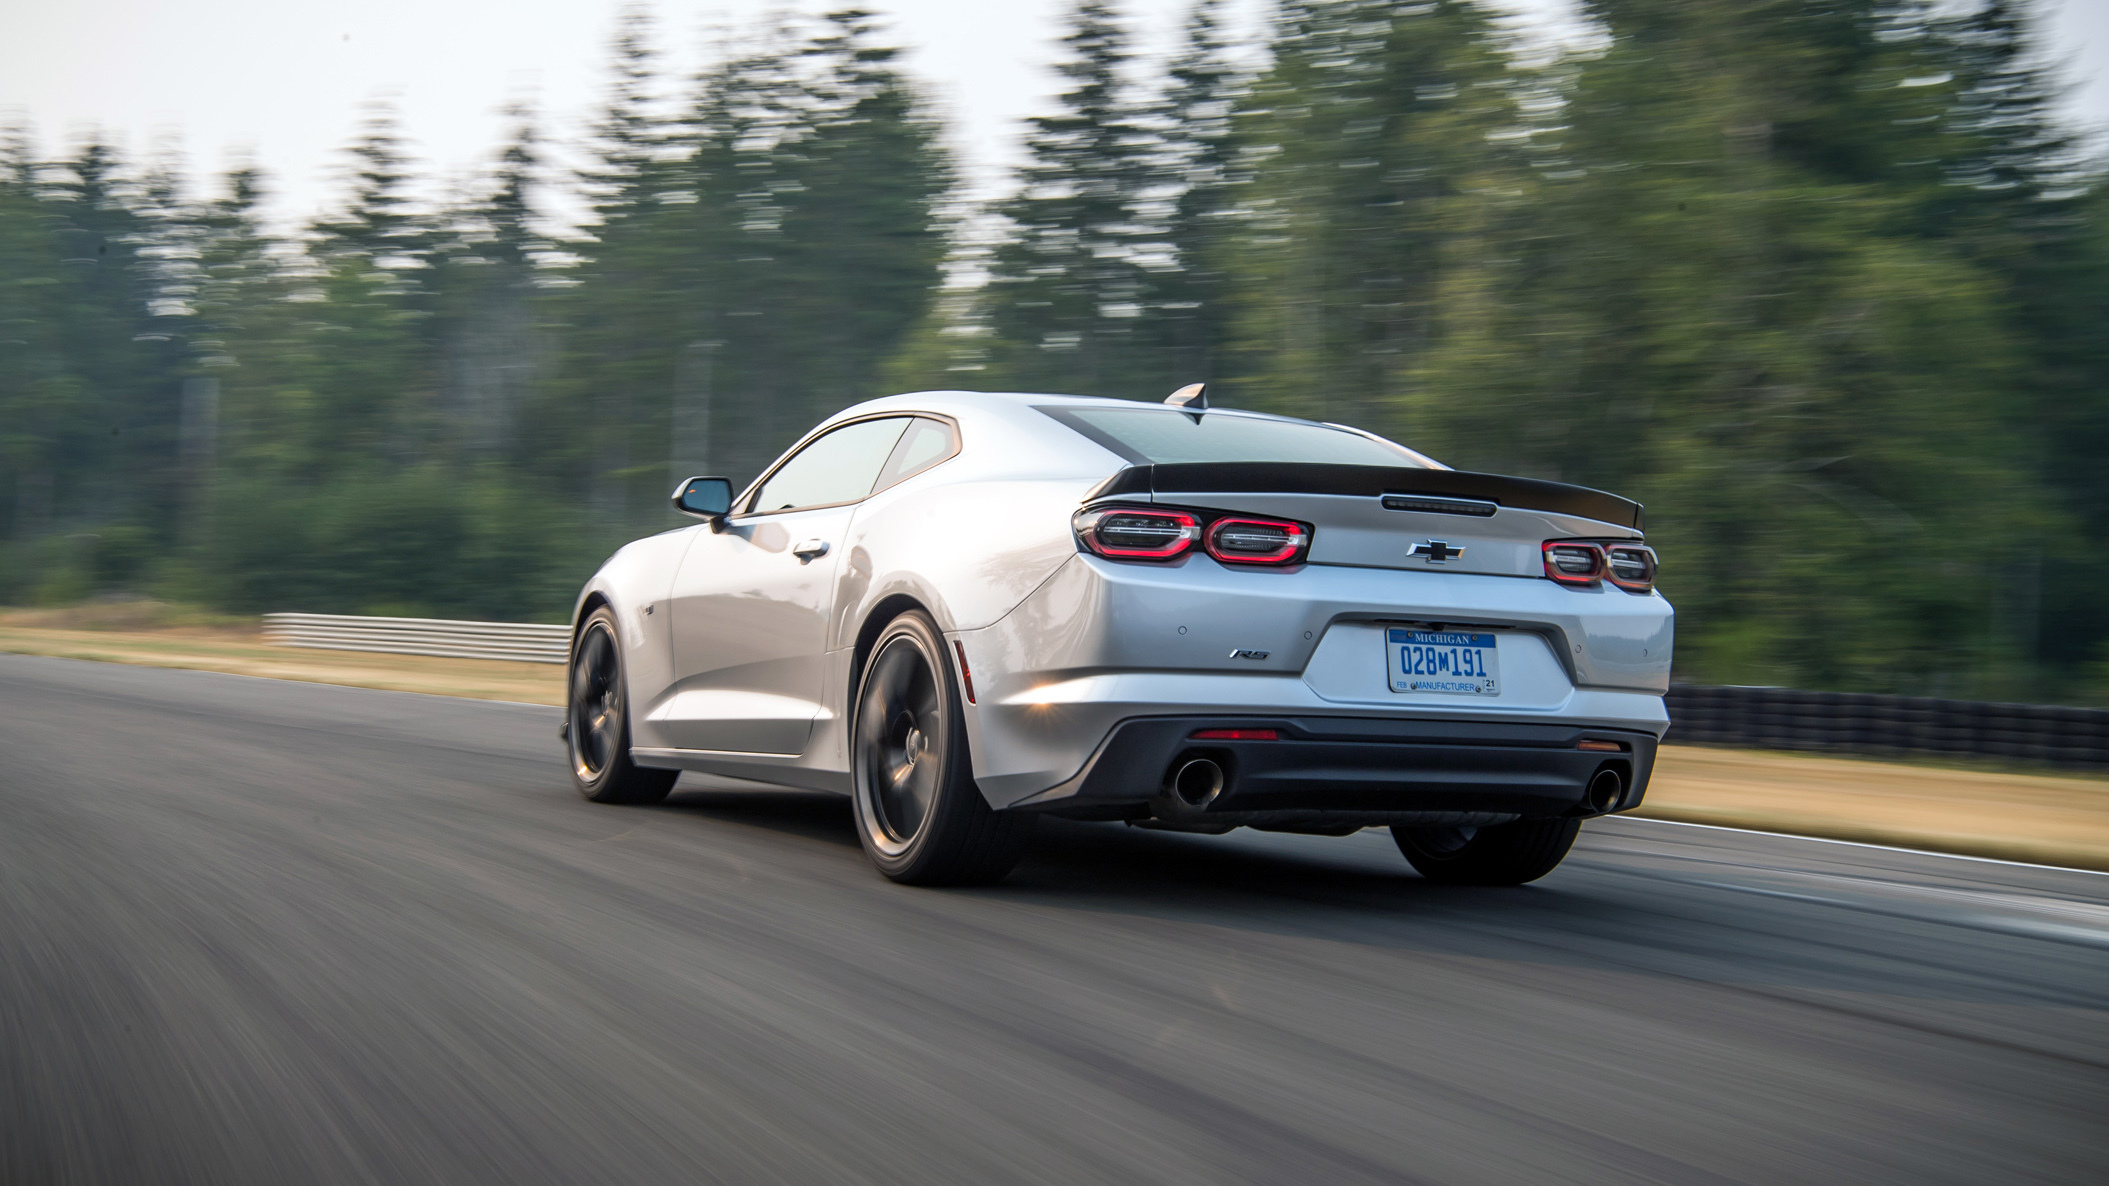 2019 Chevrolet Camaro Review | Price, specs, features and ...